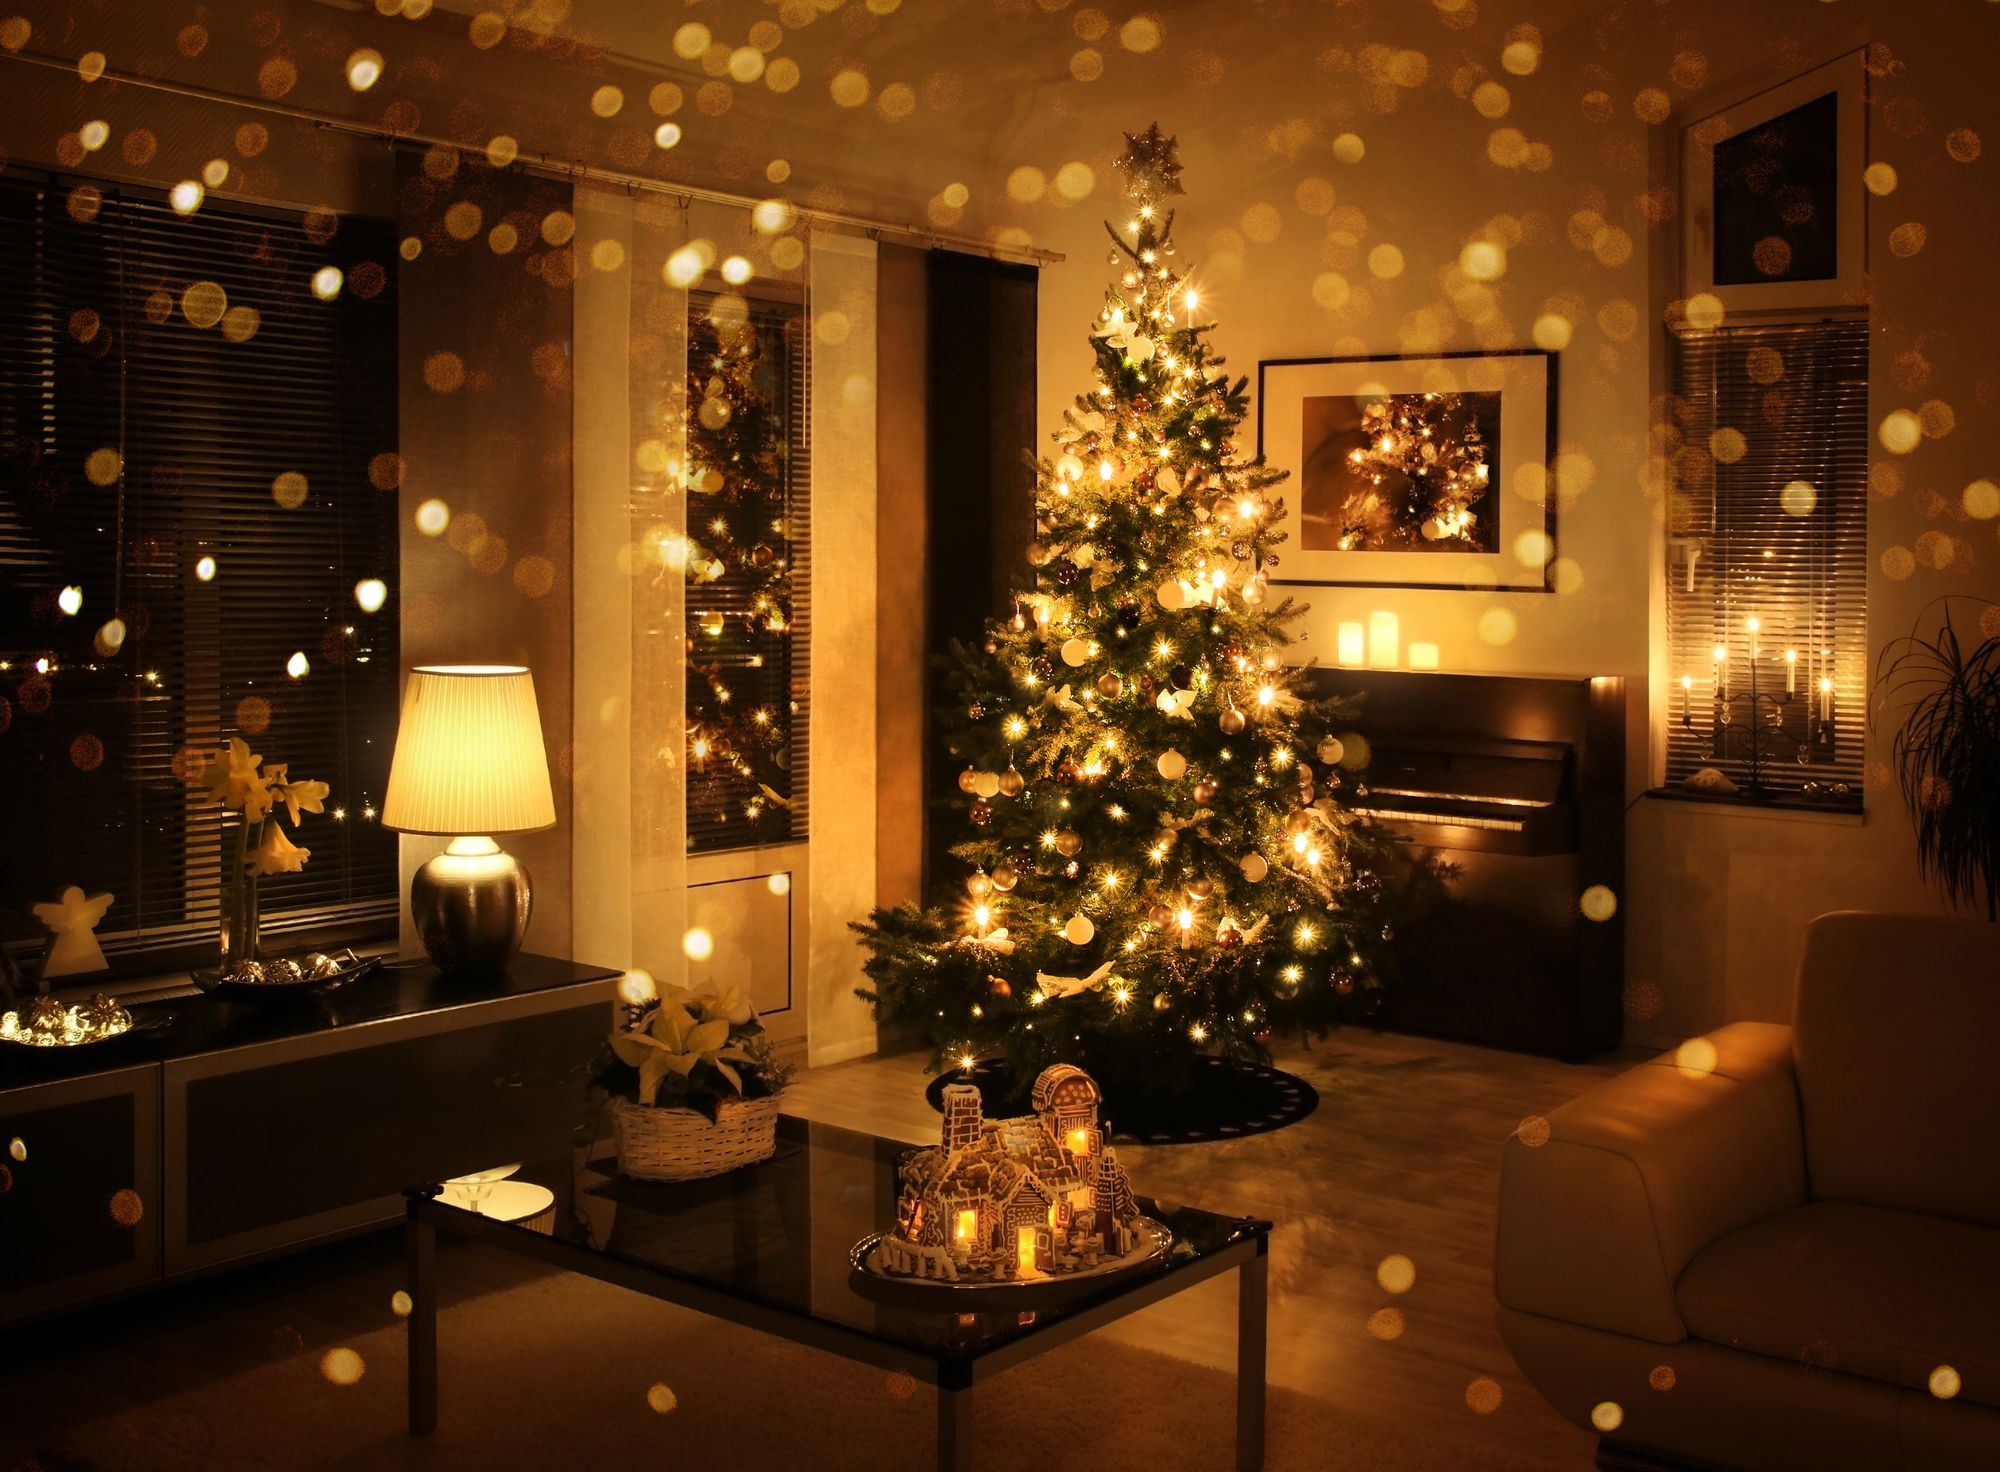 What Are The Benefits of Buying Your Home During The Holidays?